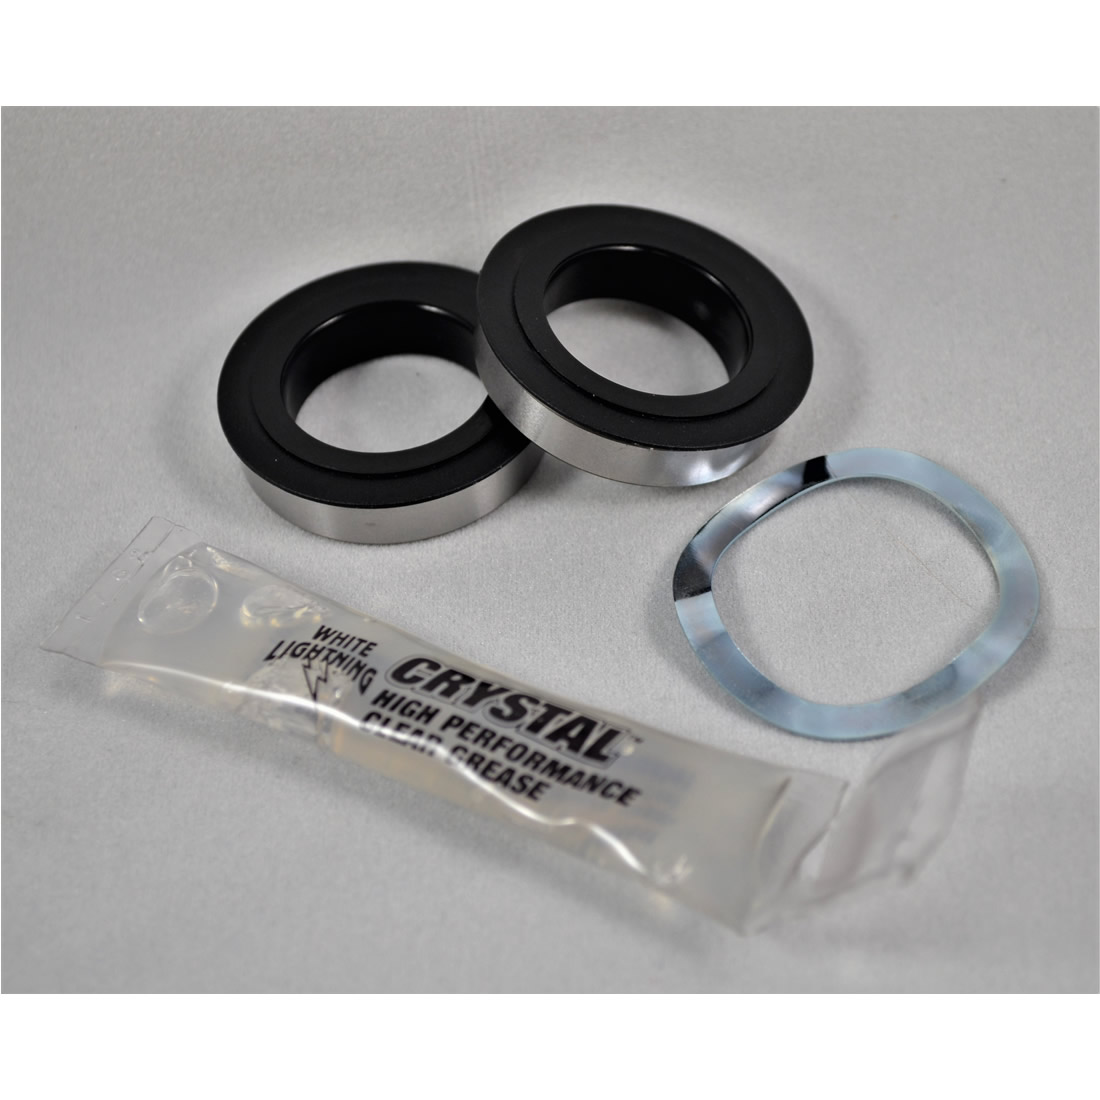 What is the Difference Between Standard, FSS, and FSS+CX Seal Hawk Racing Bearings?